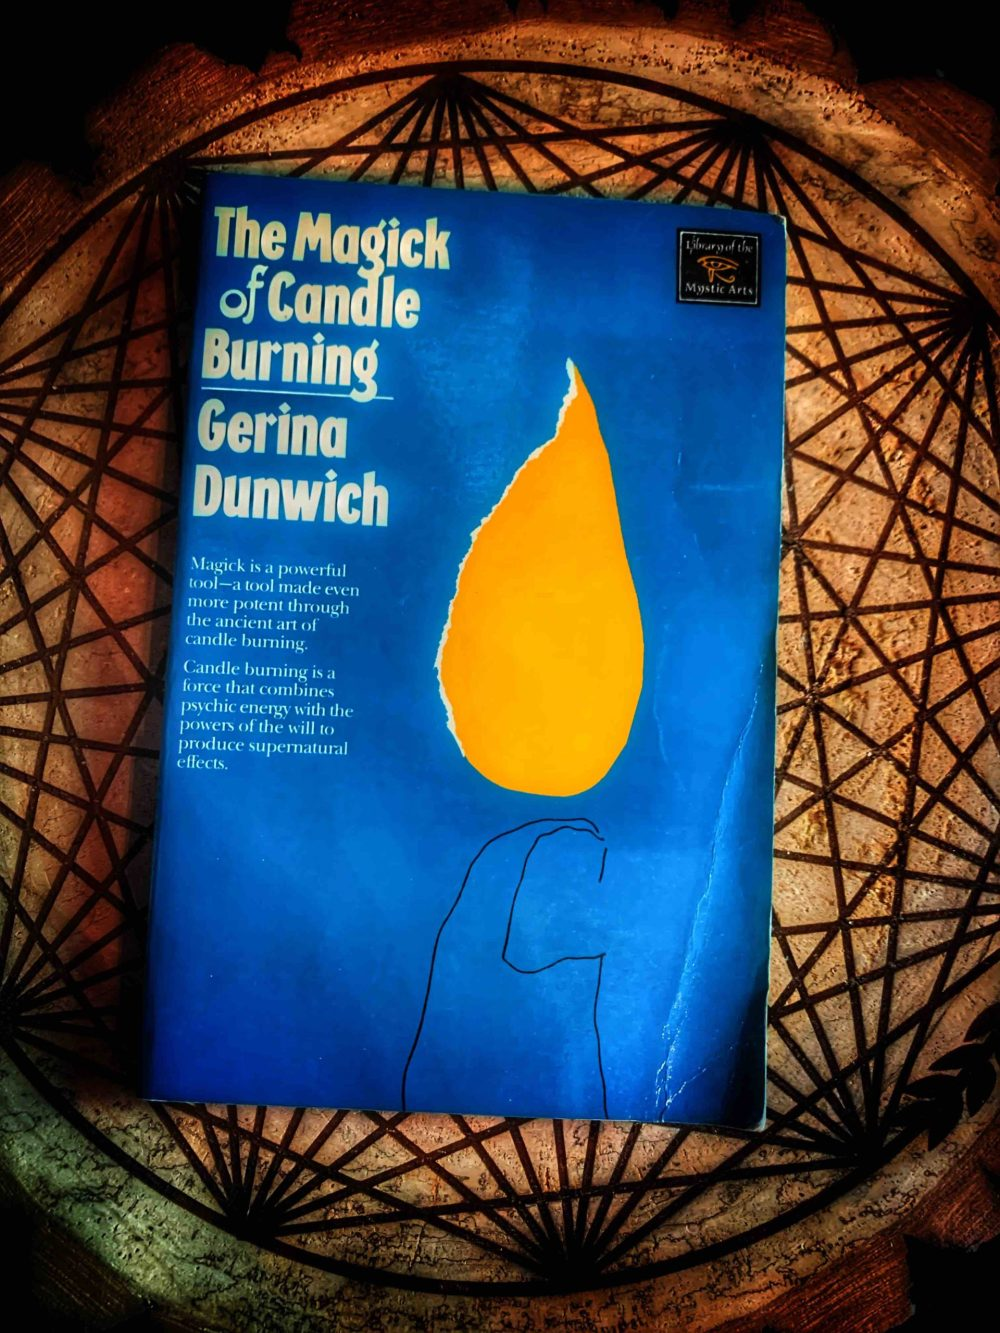 The Magick of Candle Burning